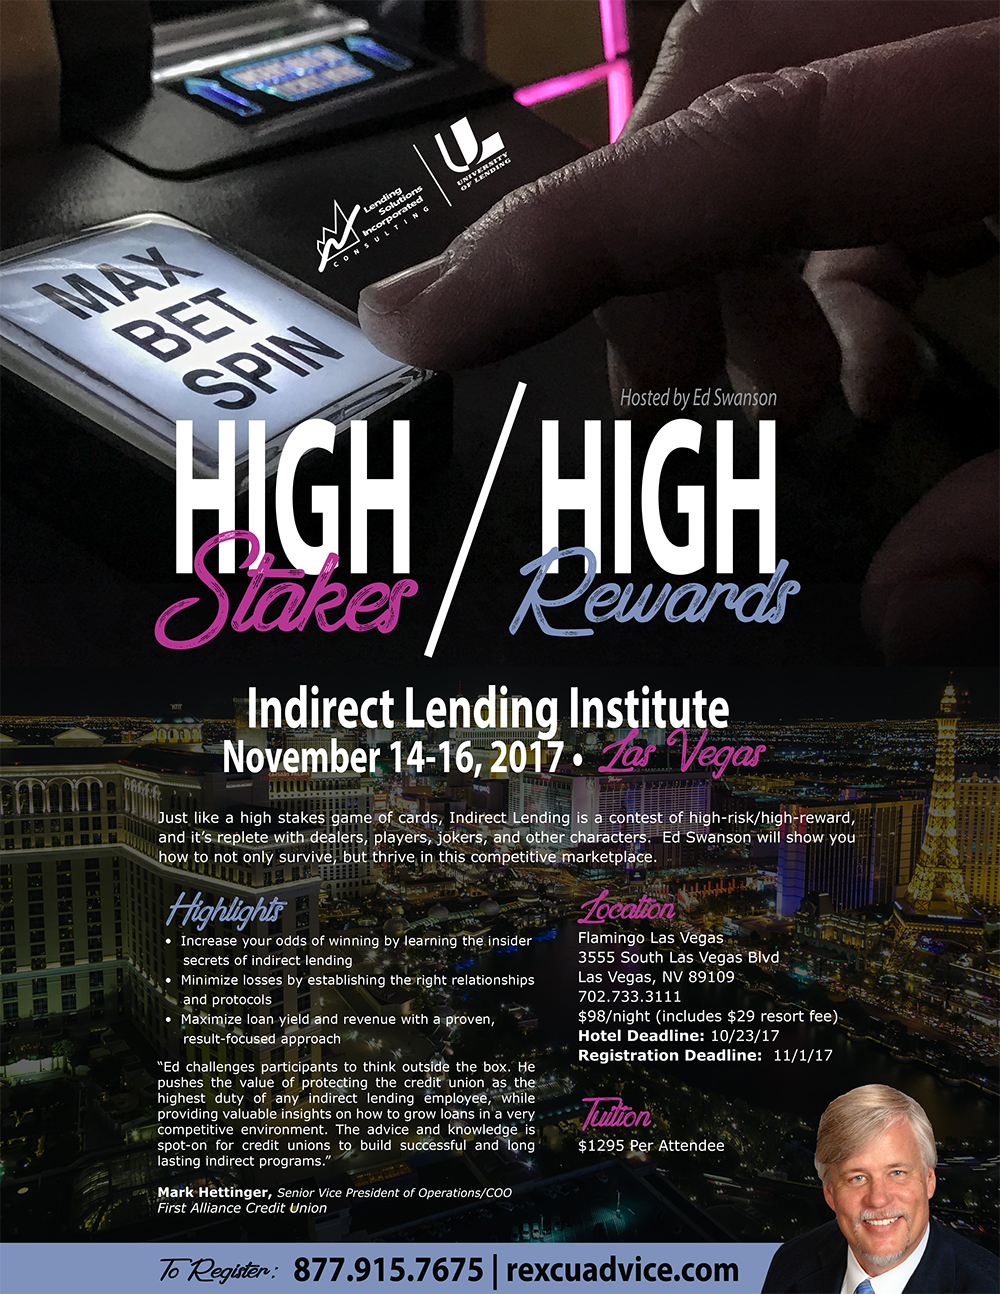 Indirect Lending Institute -  Las Vegas, NV - November 14-16, 2017